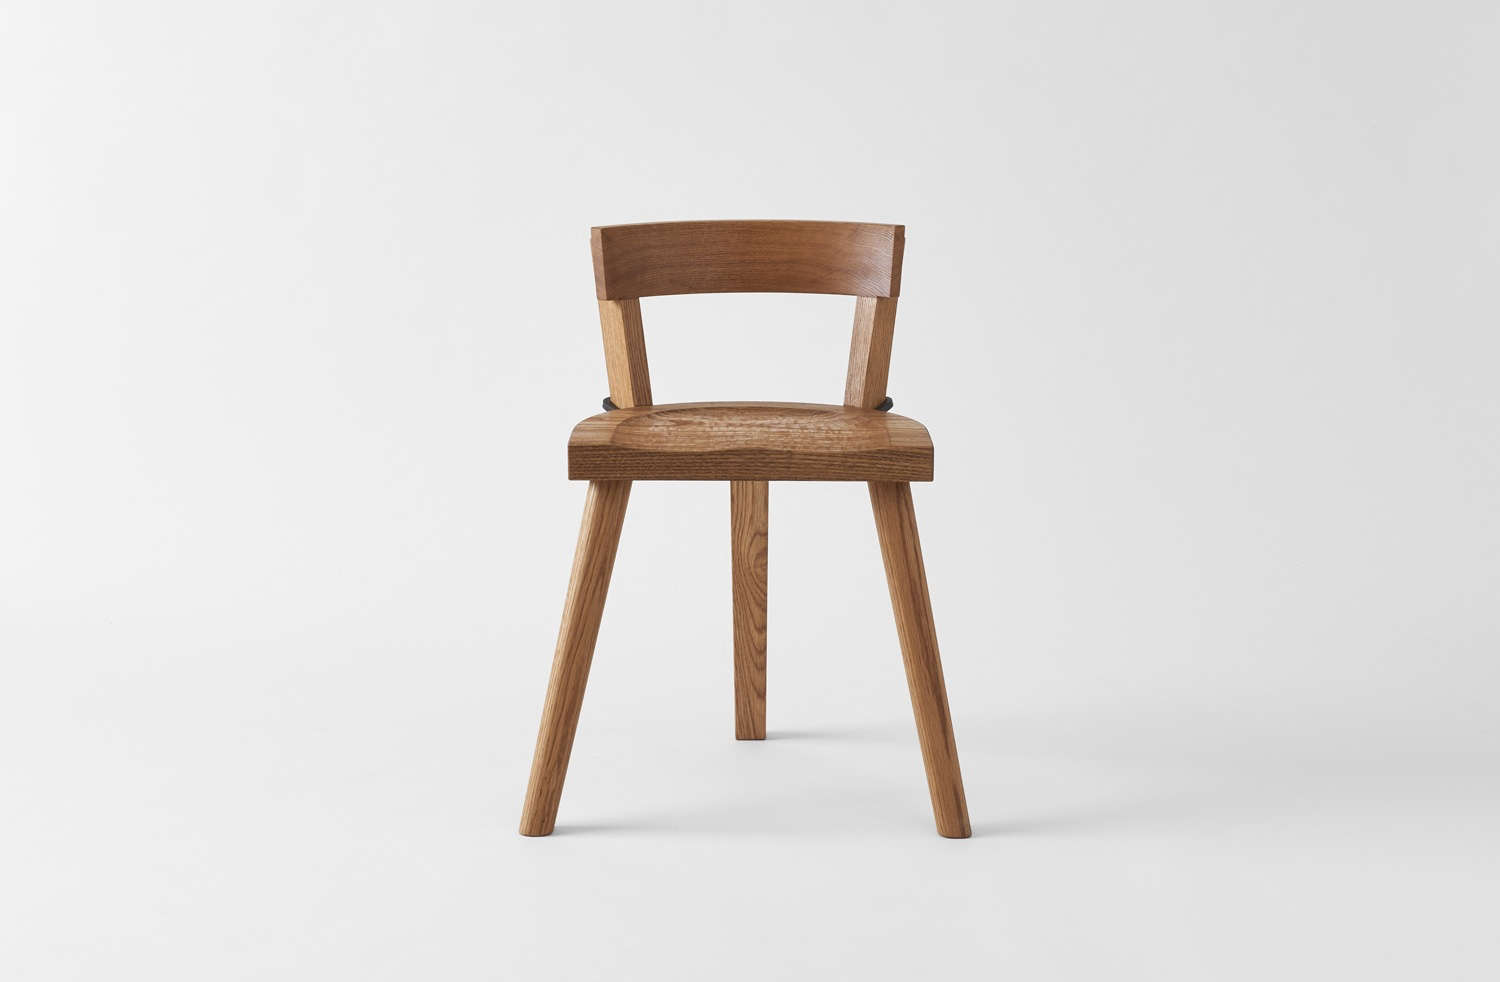 themarolles chair is available for \$875 through ed and ariel at furniture ma 10